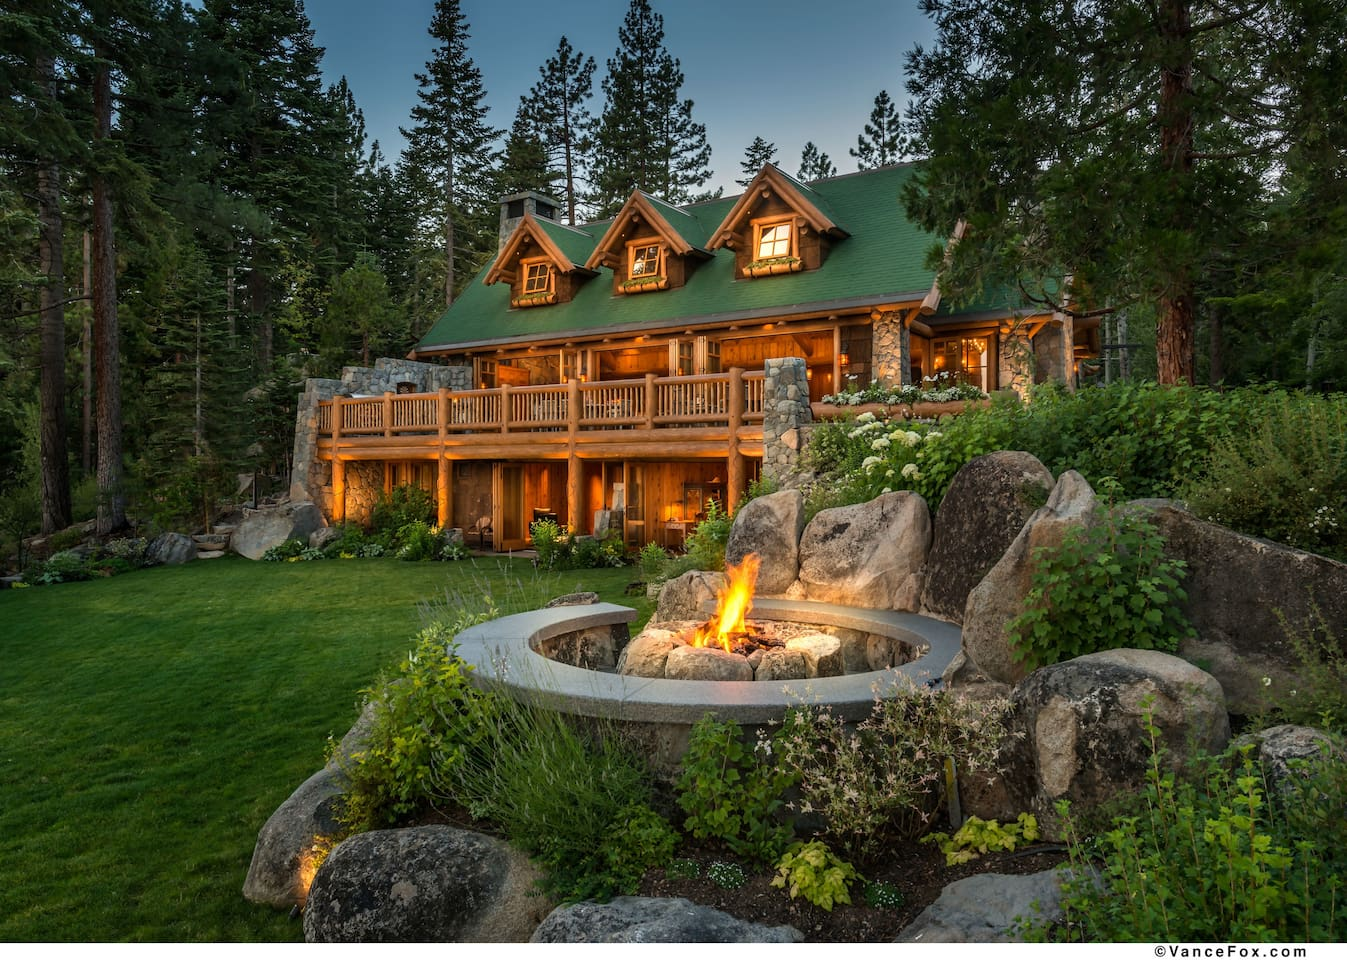 Firepit and View of House from Lake